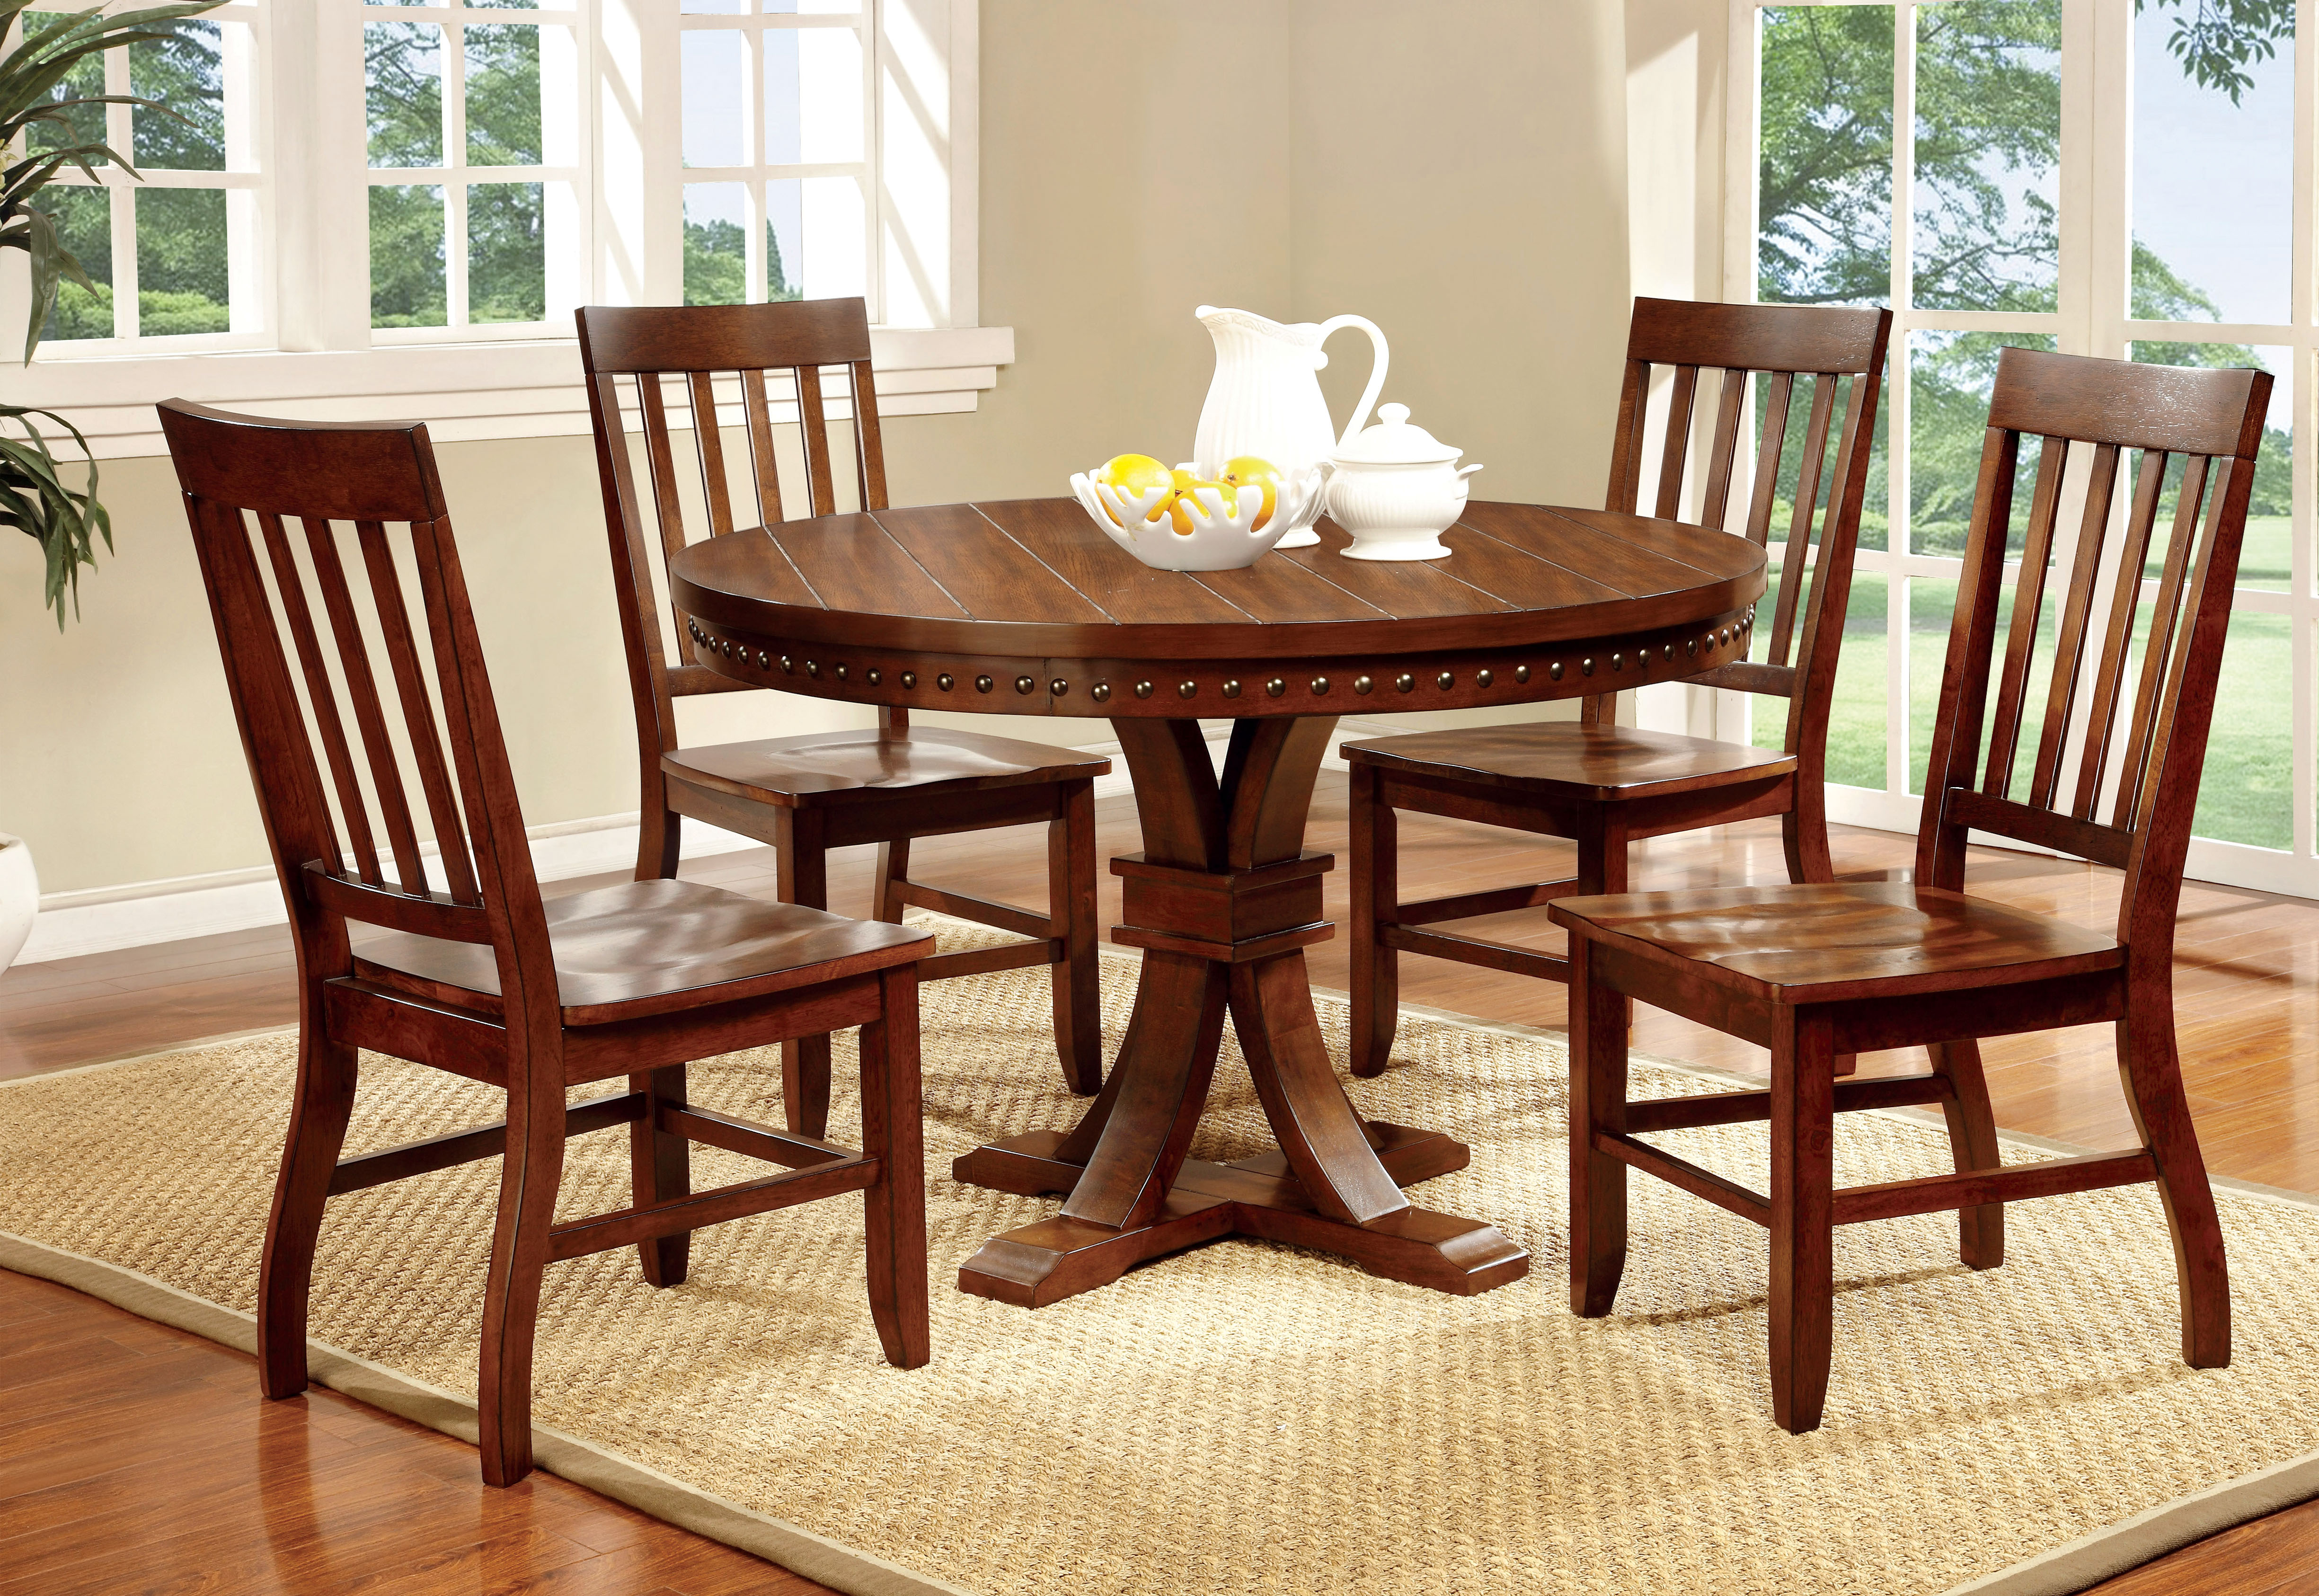 p P round kitchen table set Furniture of America Dark Oak Karl Rustic Round Dining Table Home Furniture Dining Kitchen Furniture Dining Tables